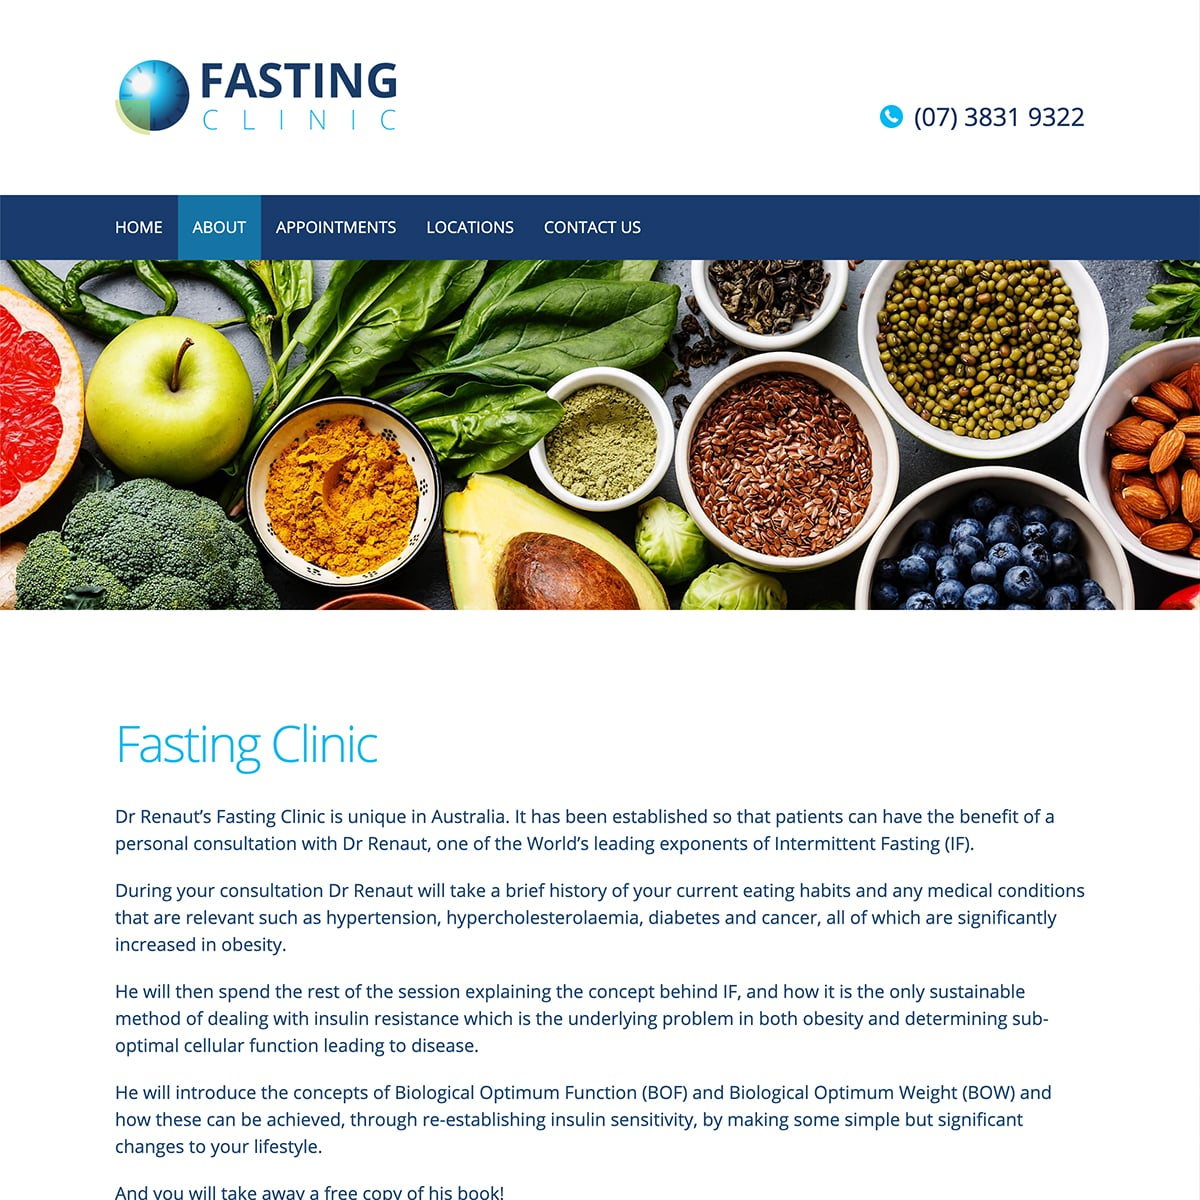 Fasting Clinic - About